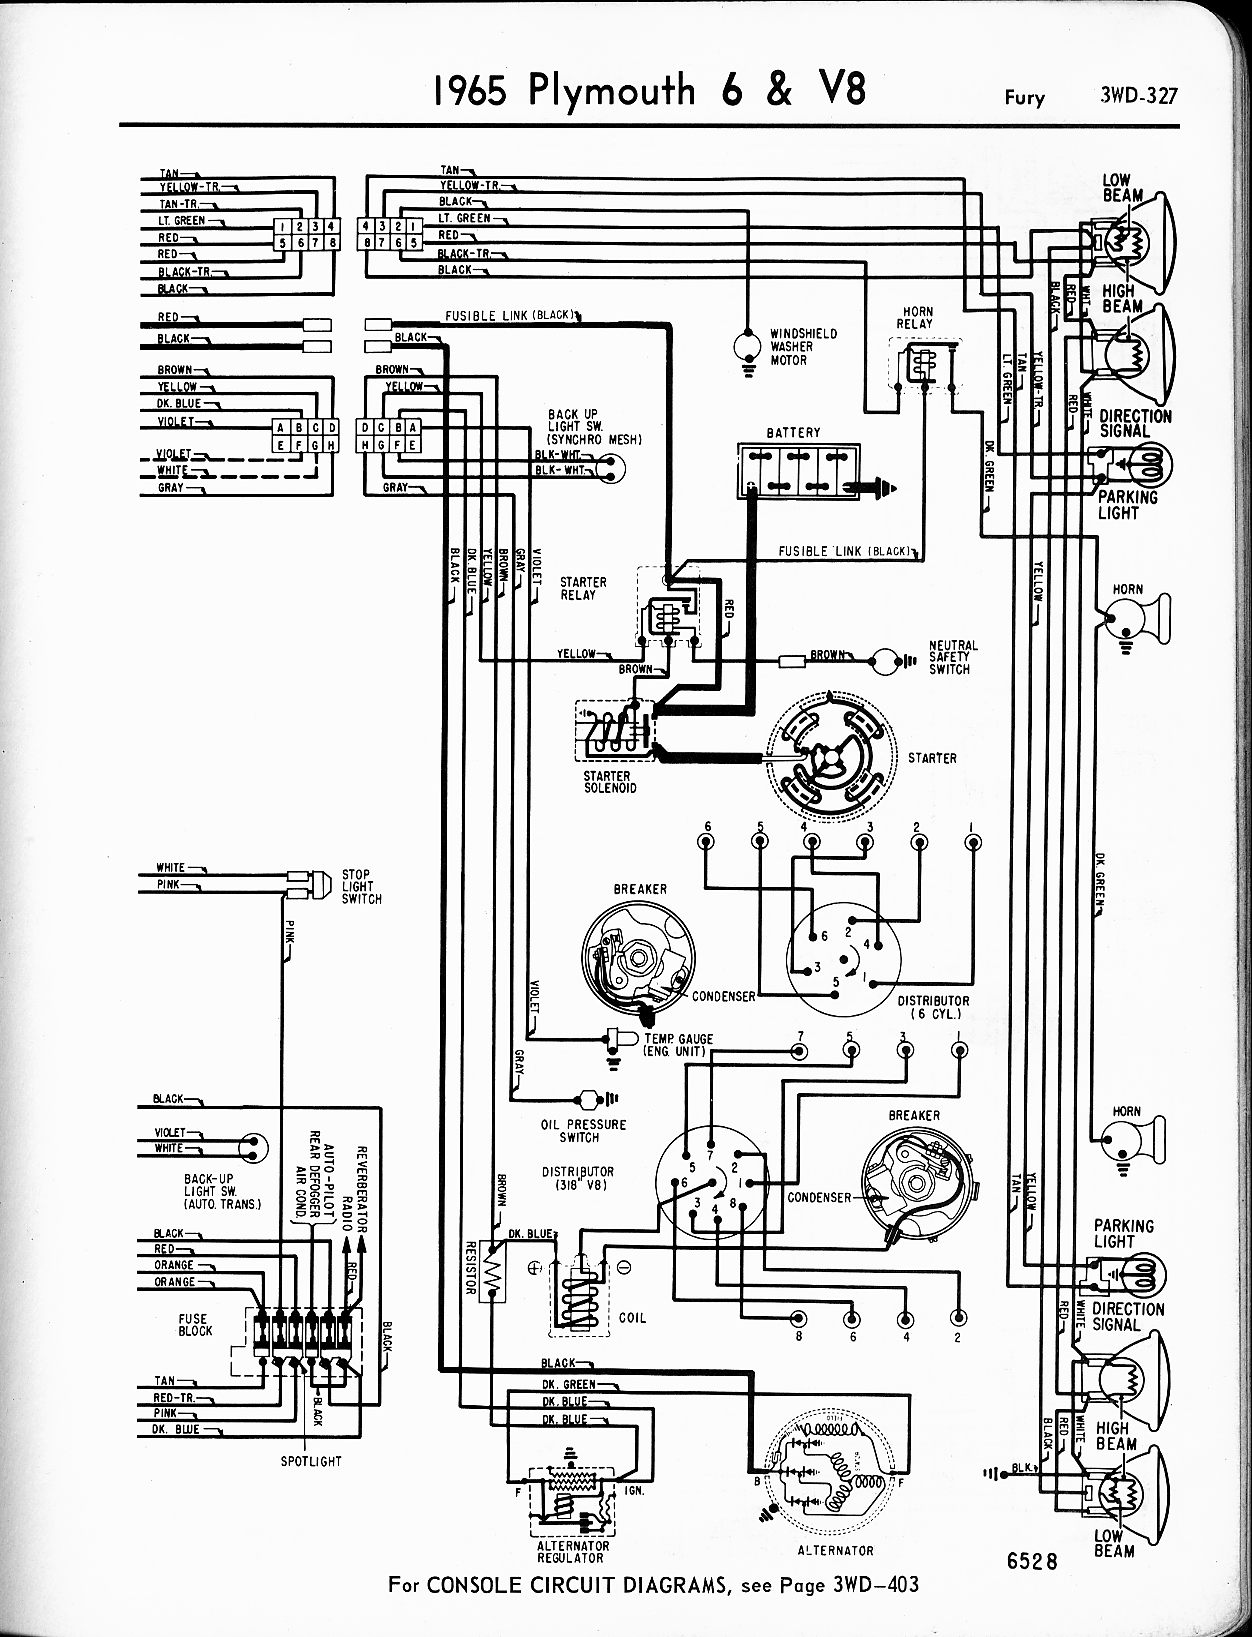 Plymouthindex mwire5765327 1953 ford wiring diagram at ww5 ww w freeautoresponder